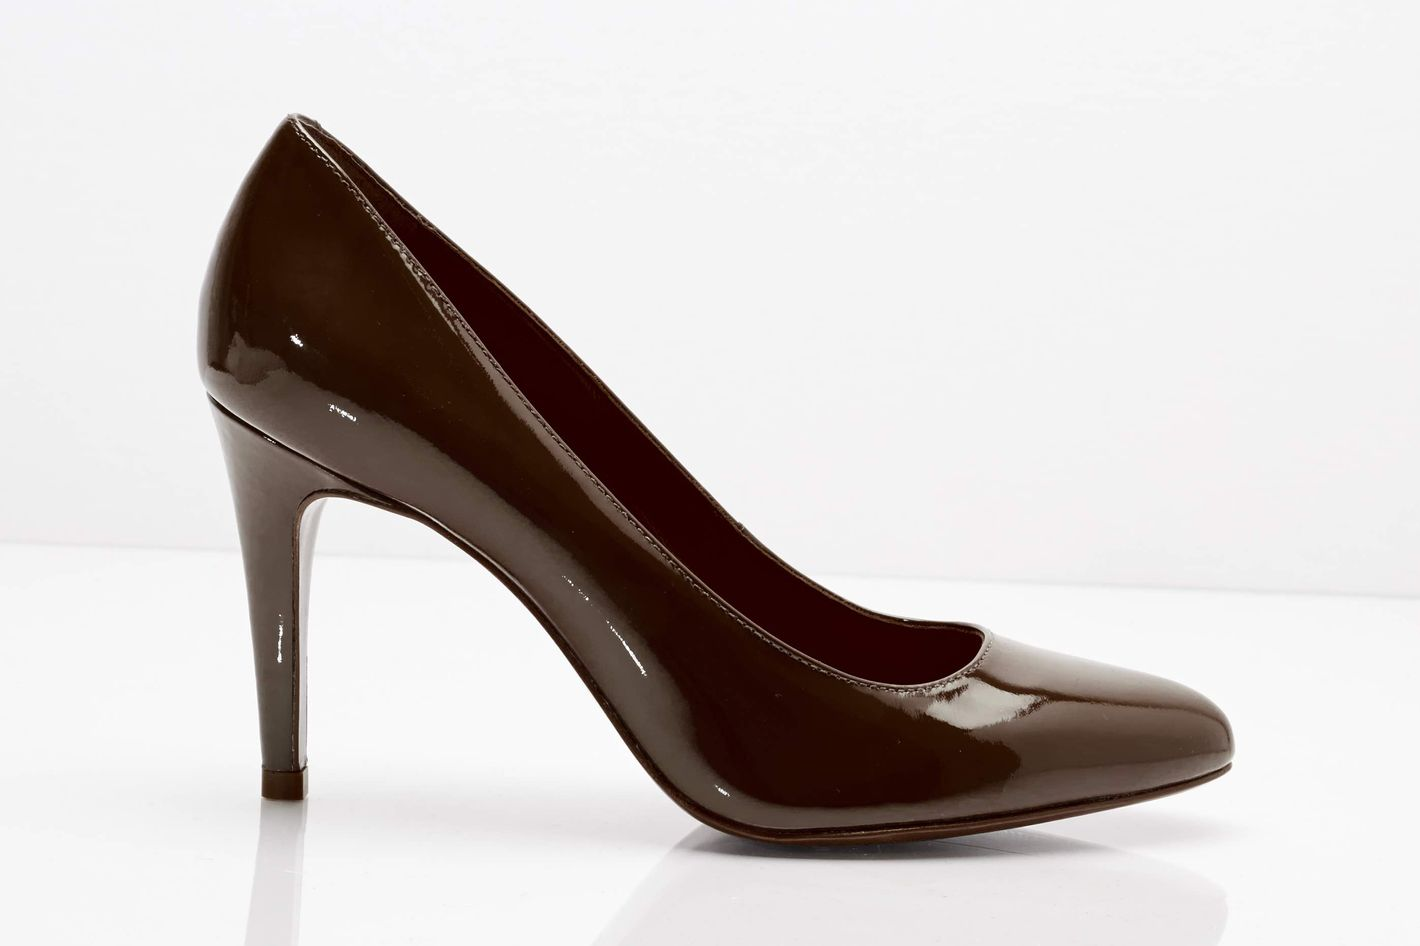 a501f9891504 New Brand Has Work-Friendly Nude Shoes for All Skin Tones